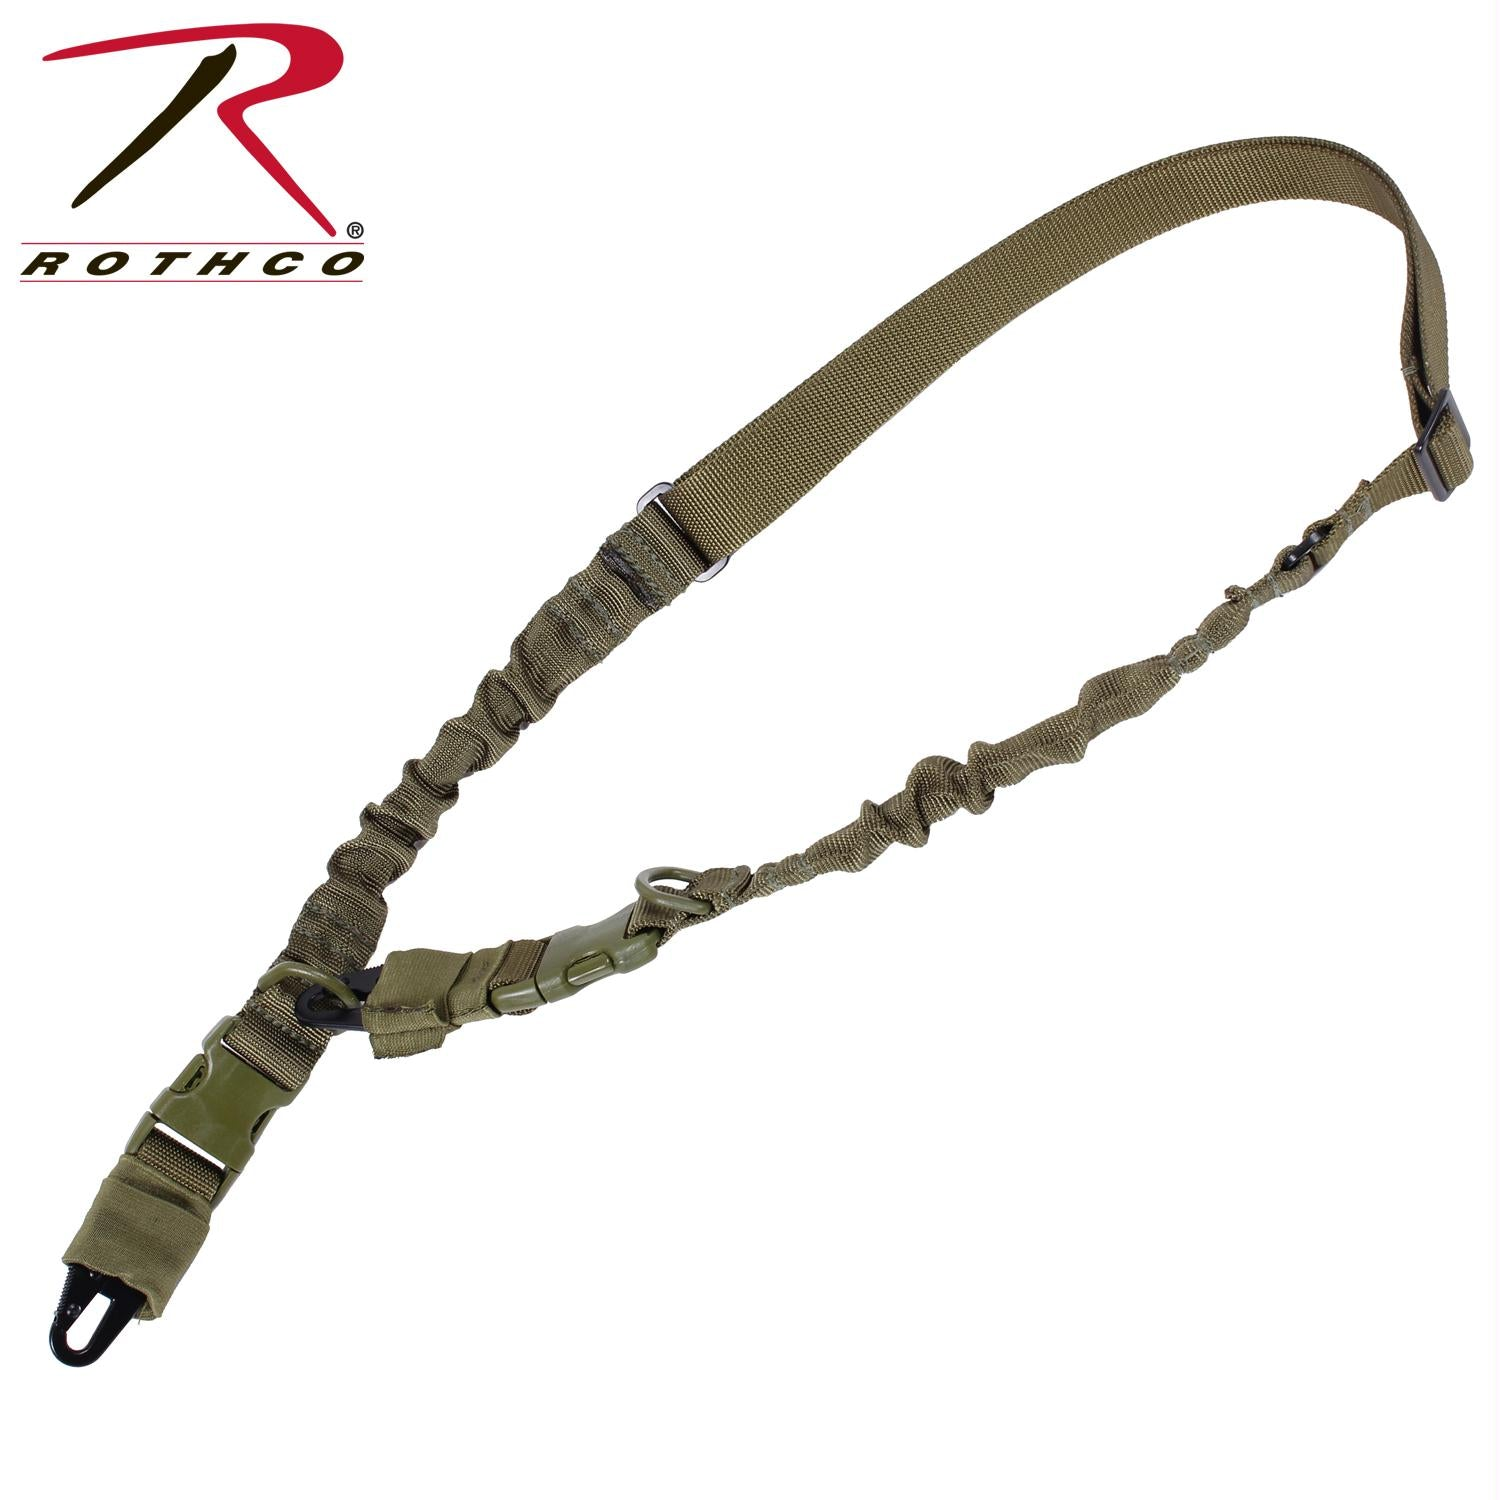 Rothco 2-Point Tactical Sling - Olive Drab